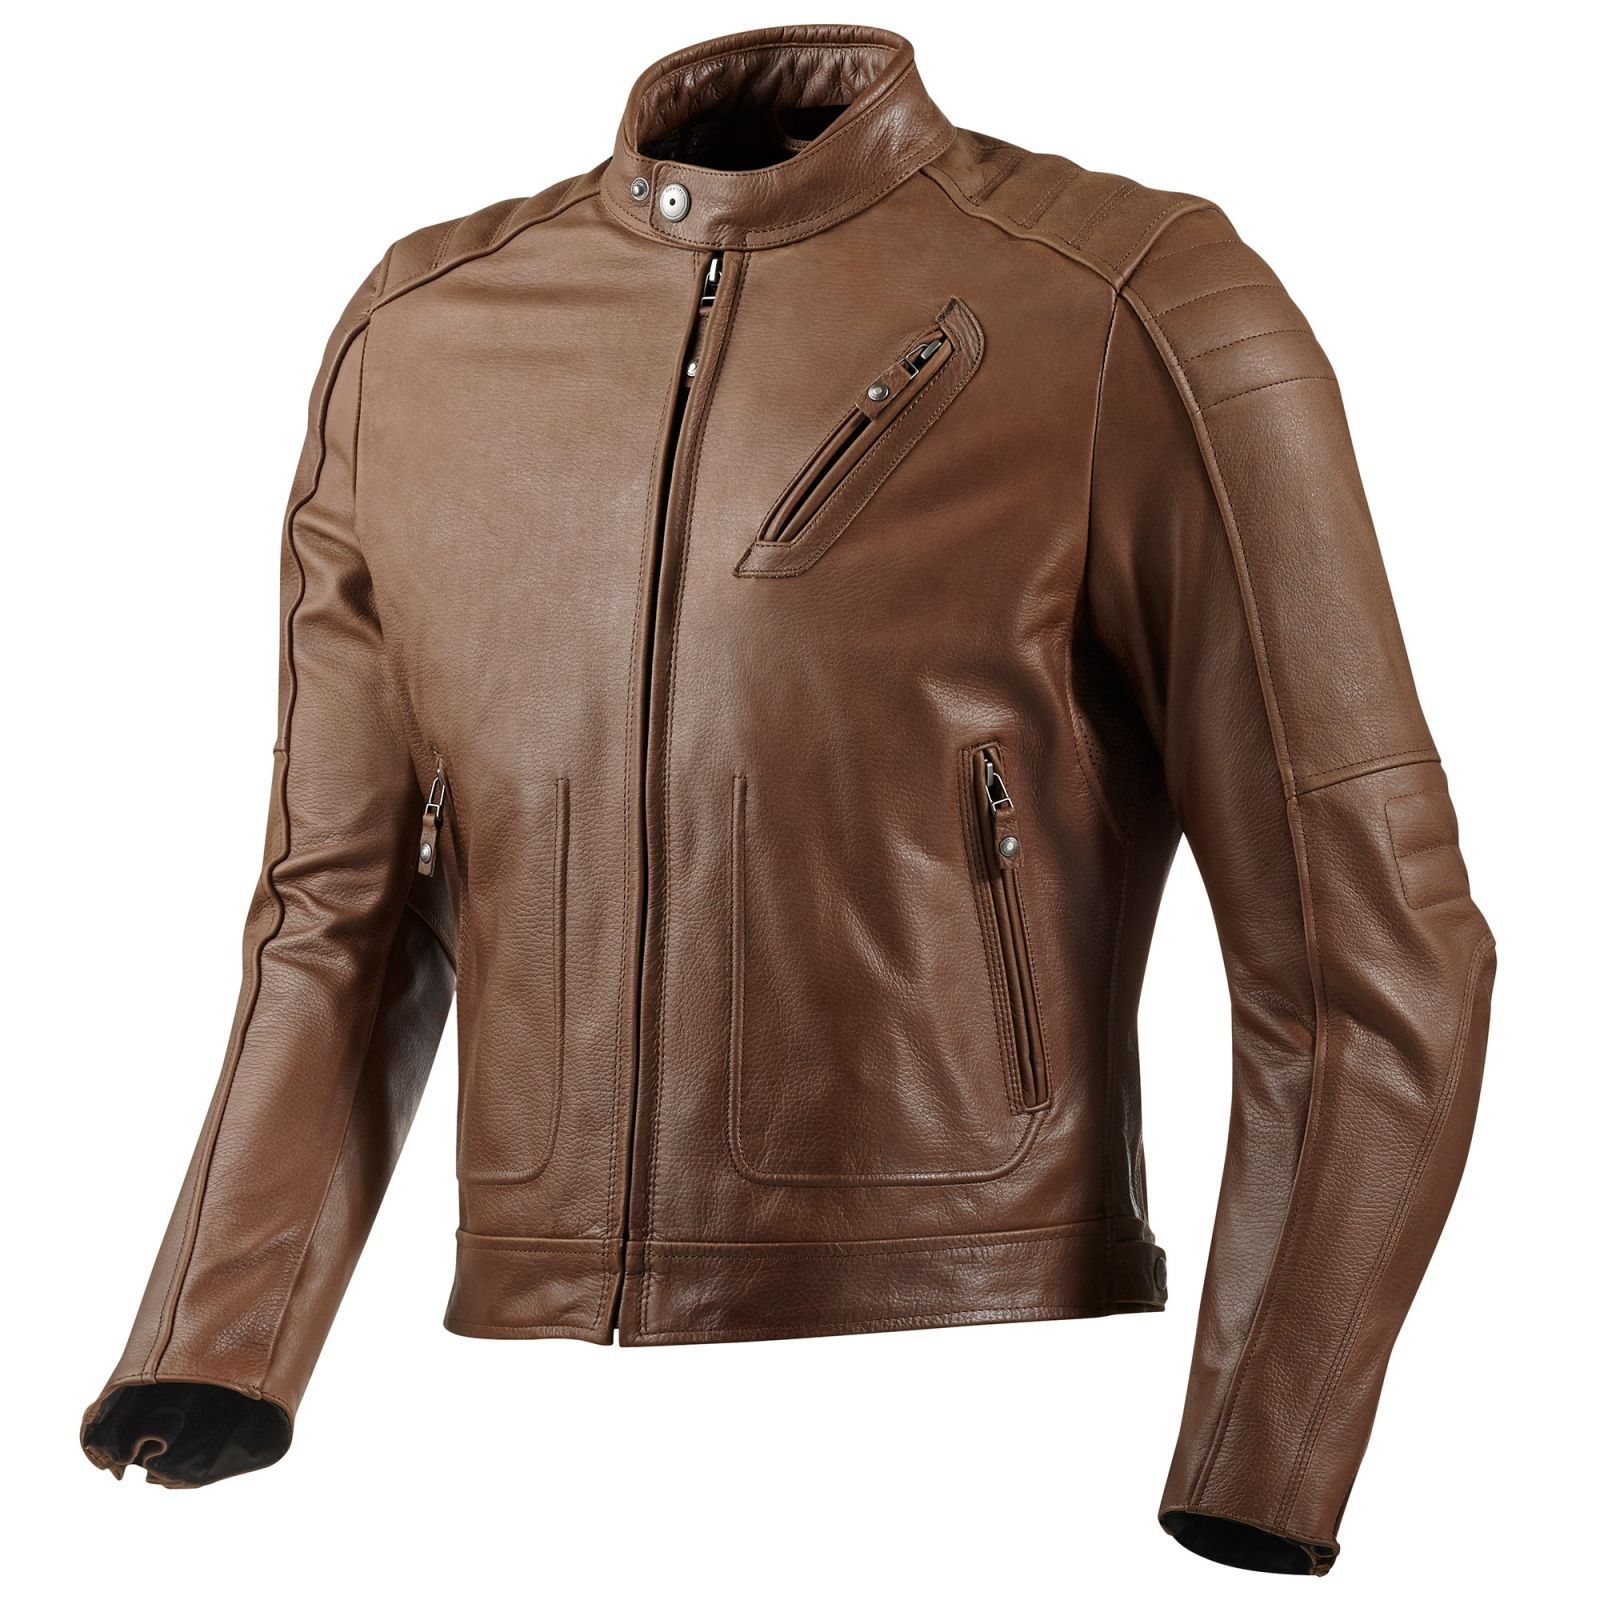 Redhook Classic Cafe Style Leather Jacket - FREE Delivery - Earn Crew